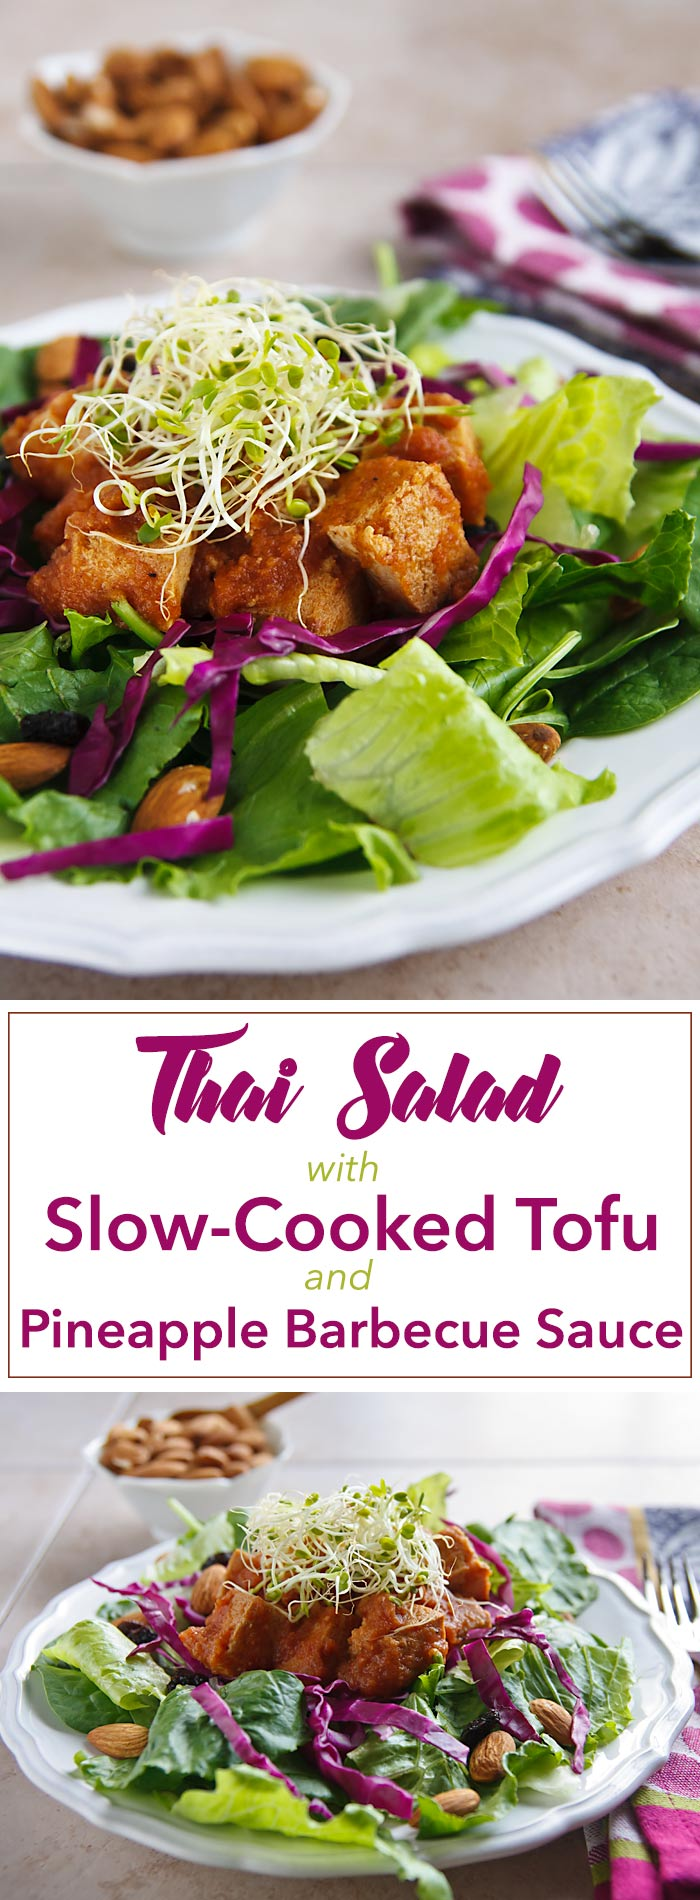 Pineapple-barbecued tofu is served over a Thai salad mix of spinach, romaine, and red cabbage lightly dressed with Low-Fat Tahini Dressing. Vegan and gluten-free.